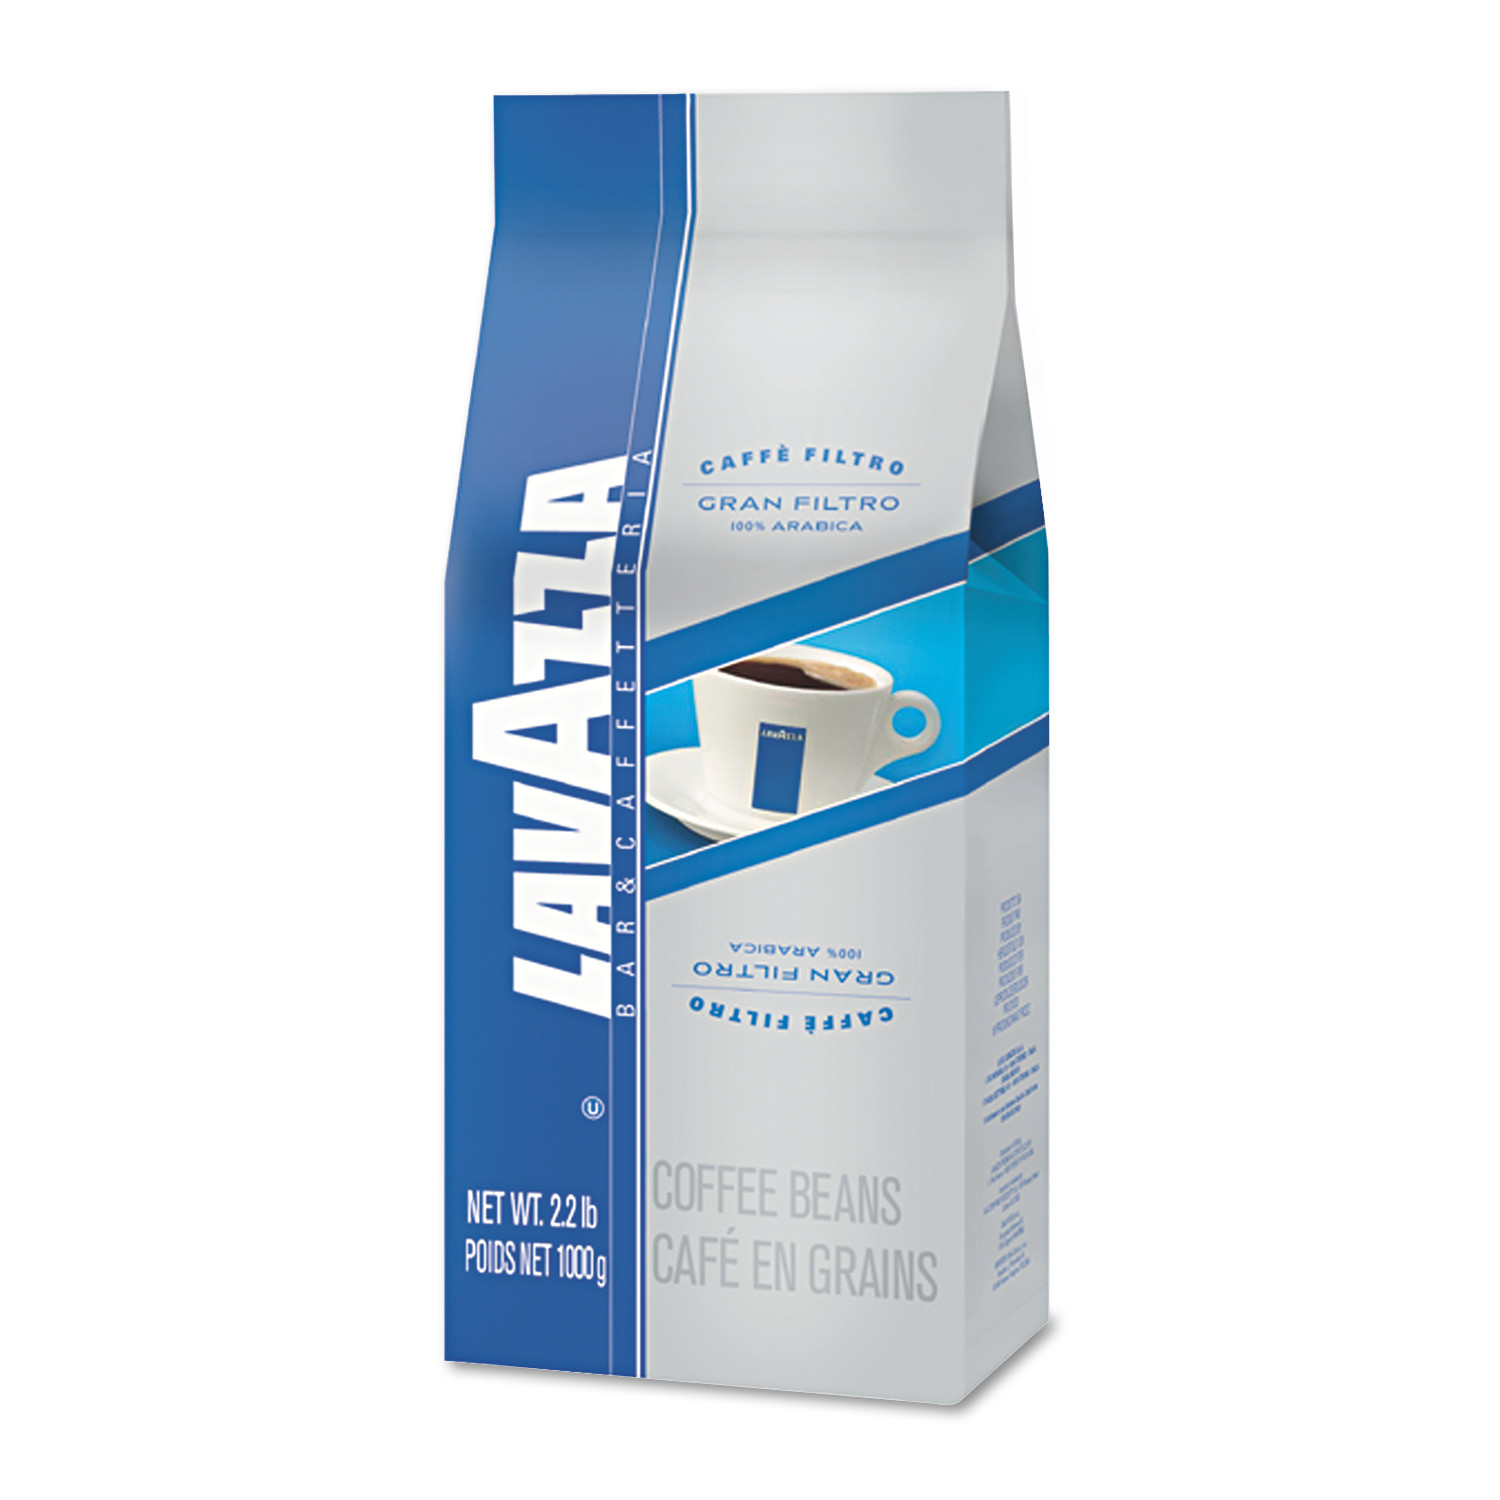 Lavazza Gran Filtro Arabica Blend Italian Light Roast Coffee, 30ct